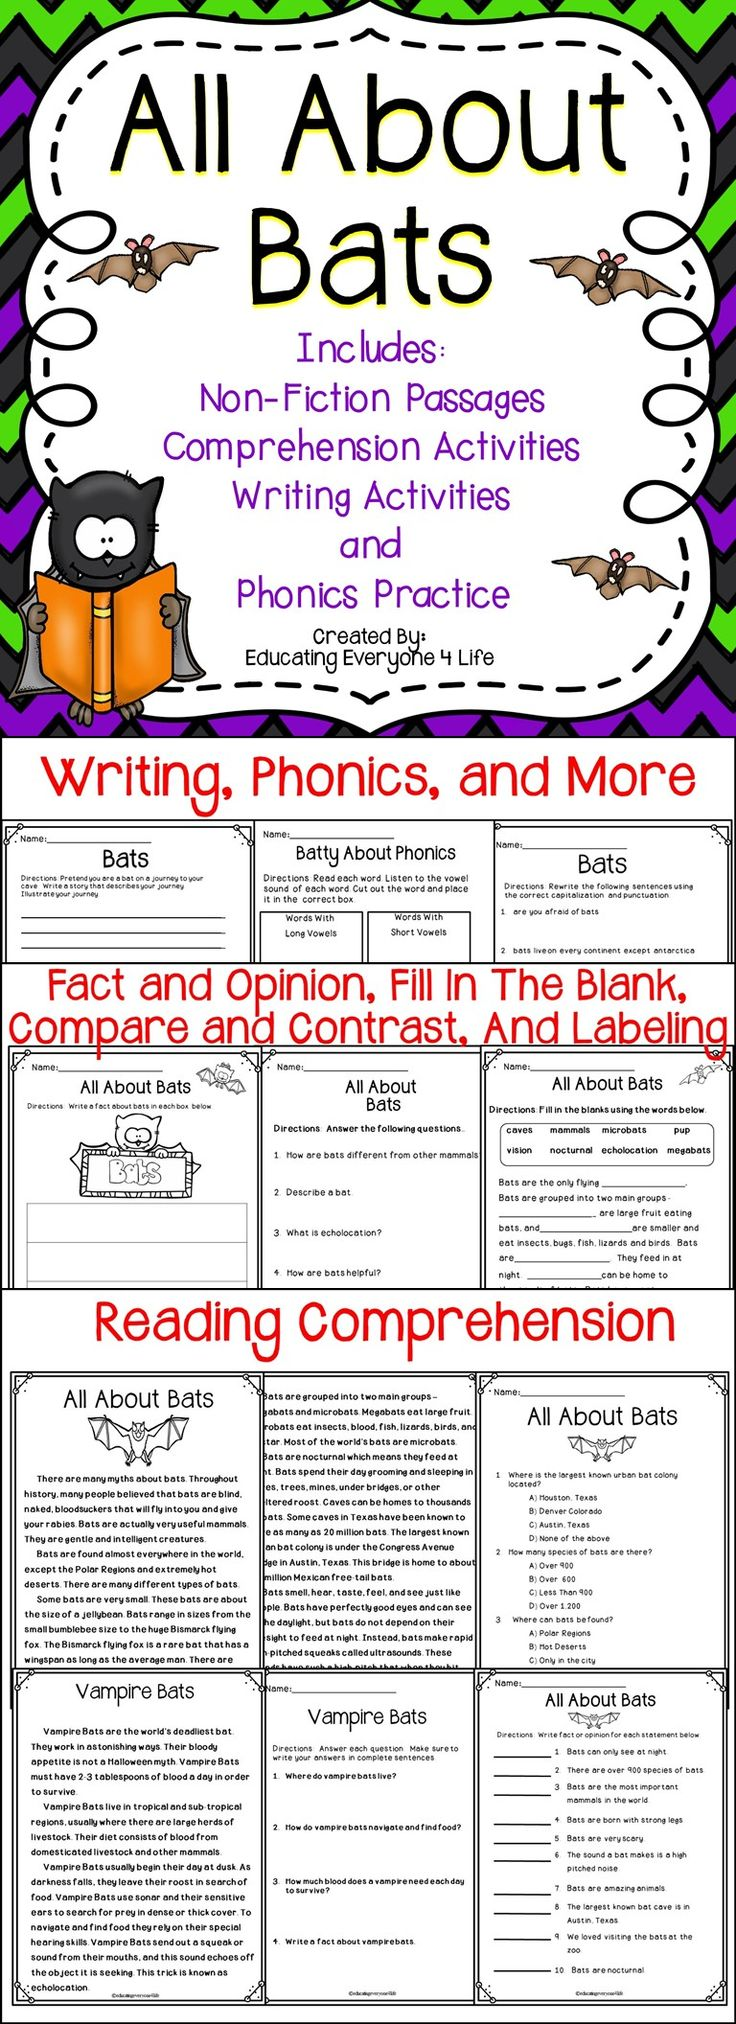 Classroom Activities - Bats - This All About Bats resource is a great supplemental activities pack for the classroom. This teaching resource includes reading comprehension, writing, phonics, capitalization, punctuation, and more!